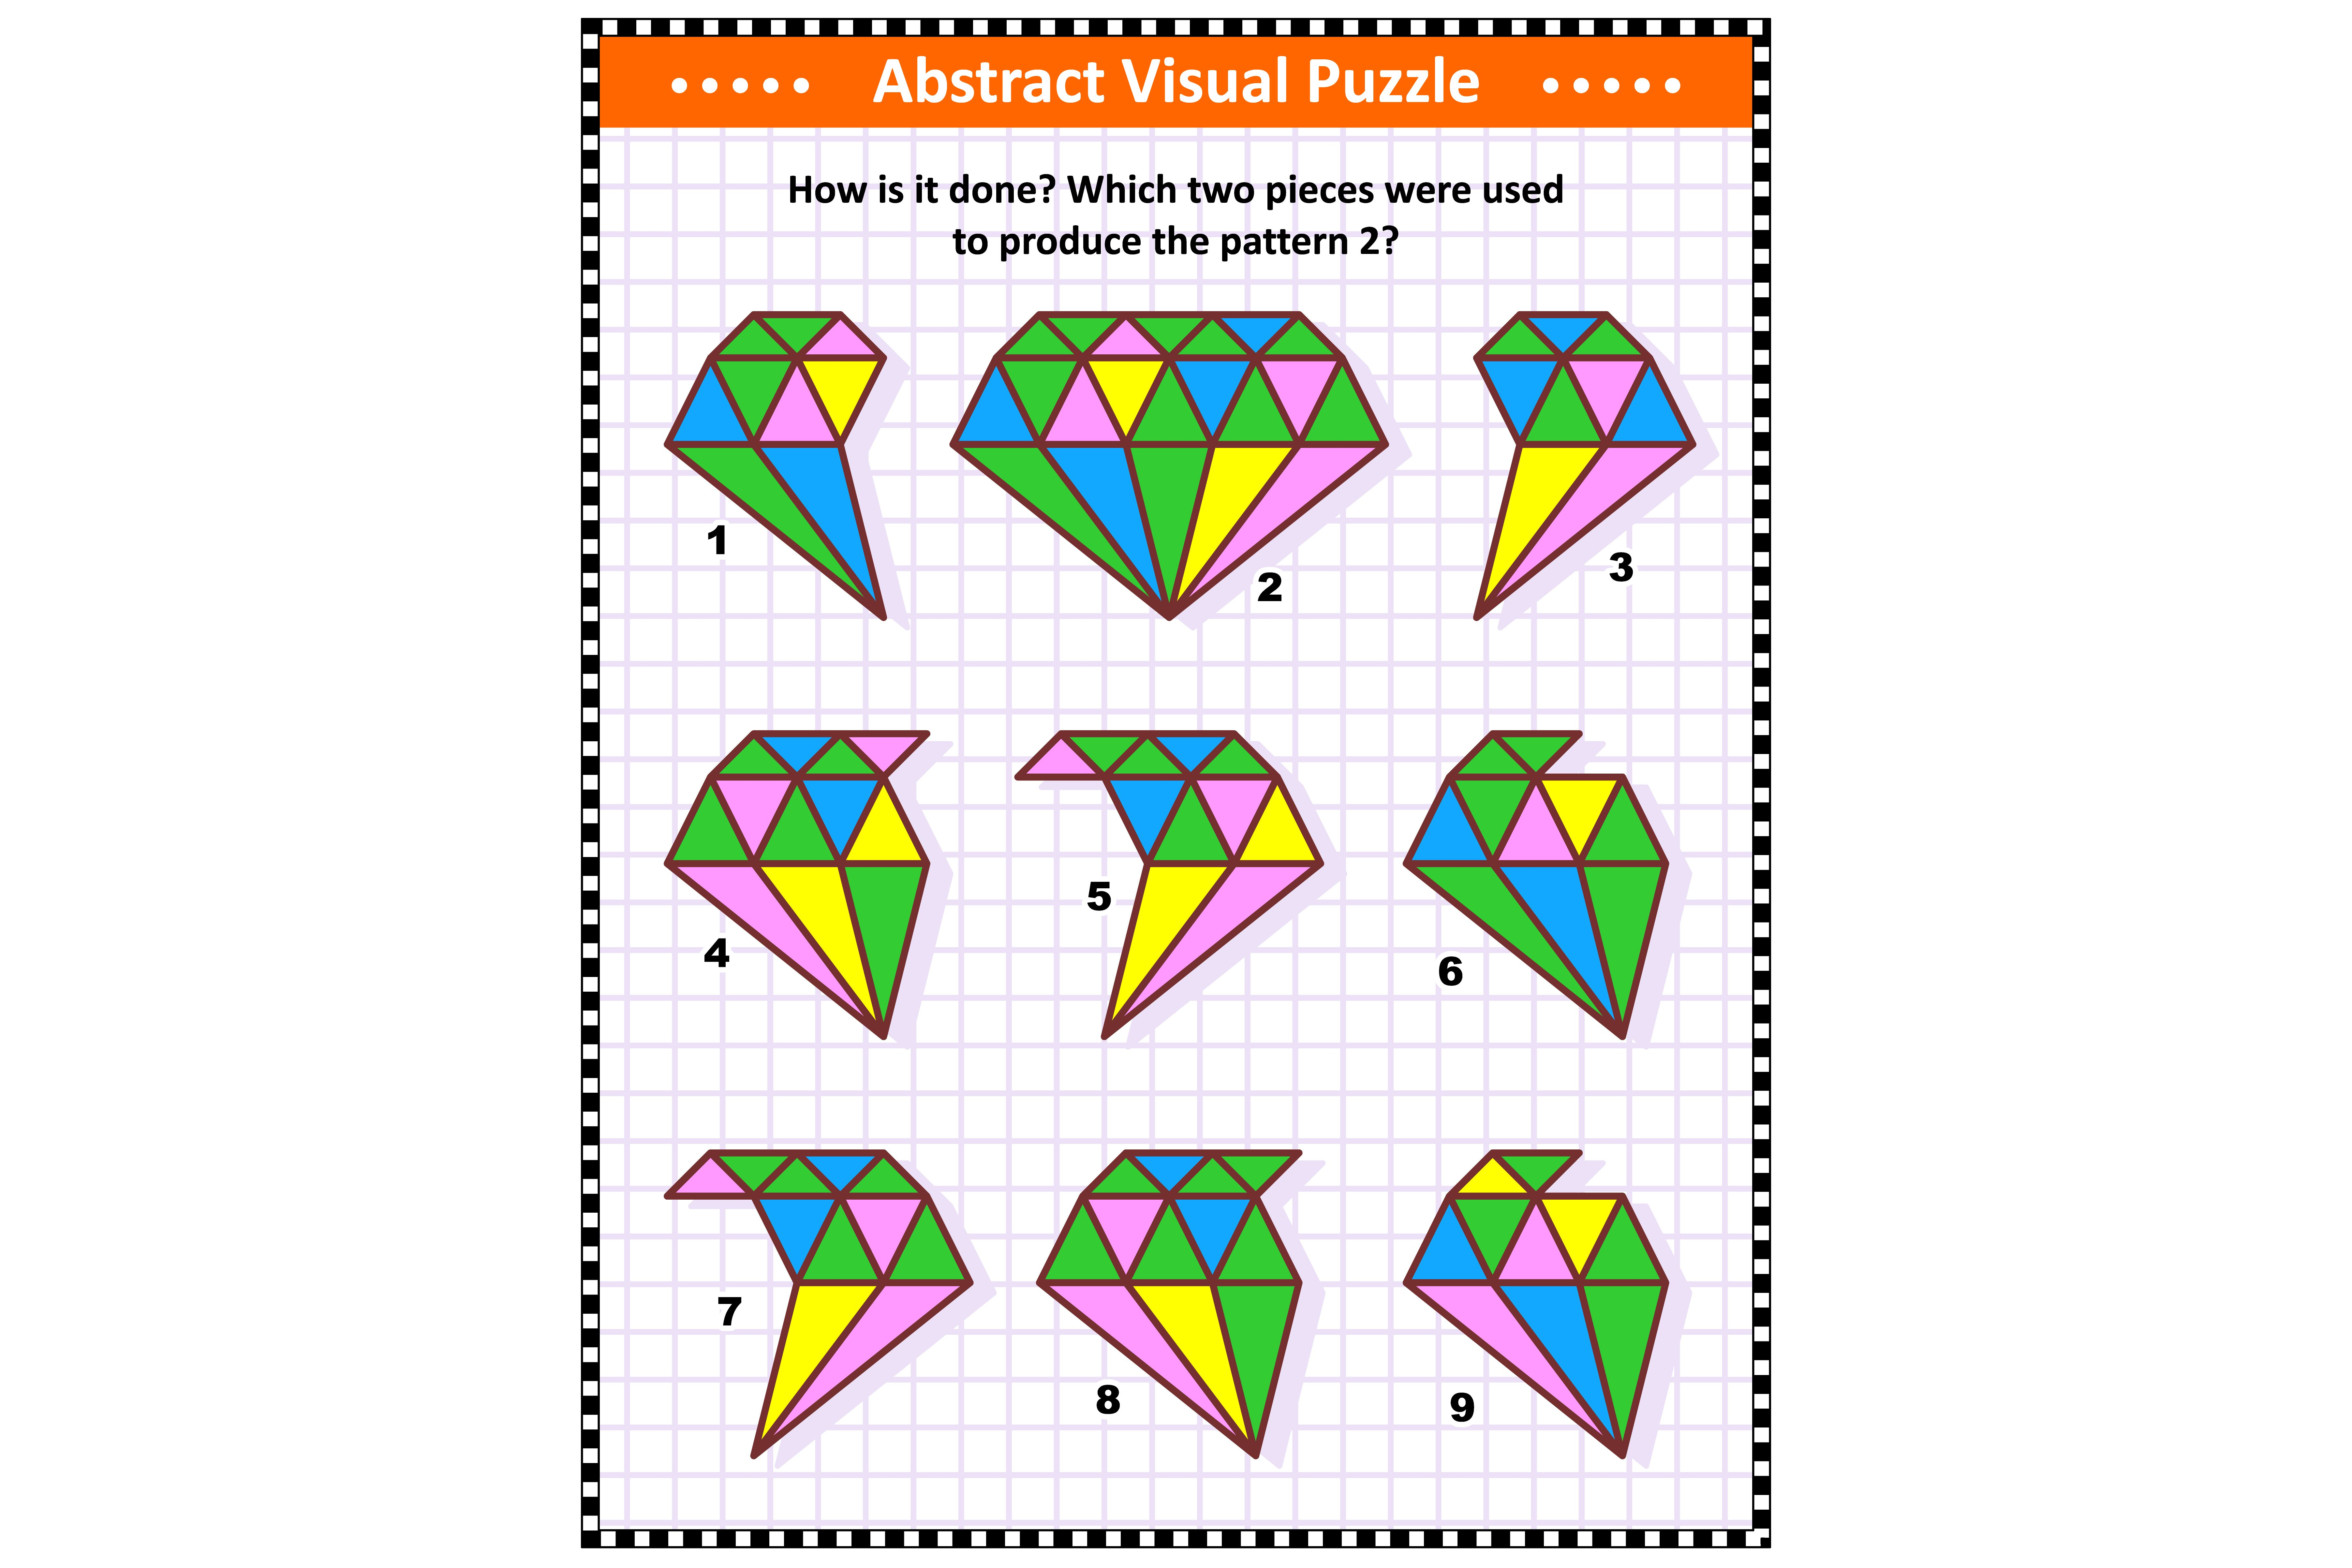 IQ, memory and spacial reasoning skills training abstract visual puzzle: How is it done? Which two pieces were used to produce the pattern 2? Answer included.; Shutterstock ID 1570897735; Job (TFH, TOH, RD, BNB, CWM, CM): RD